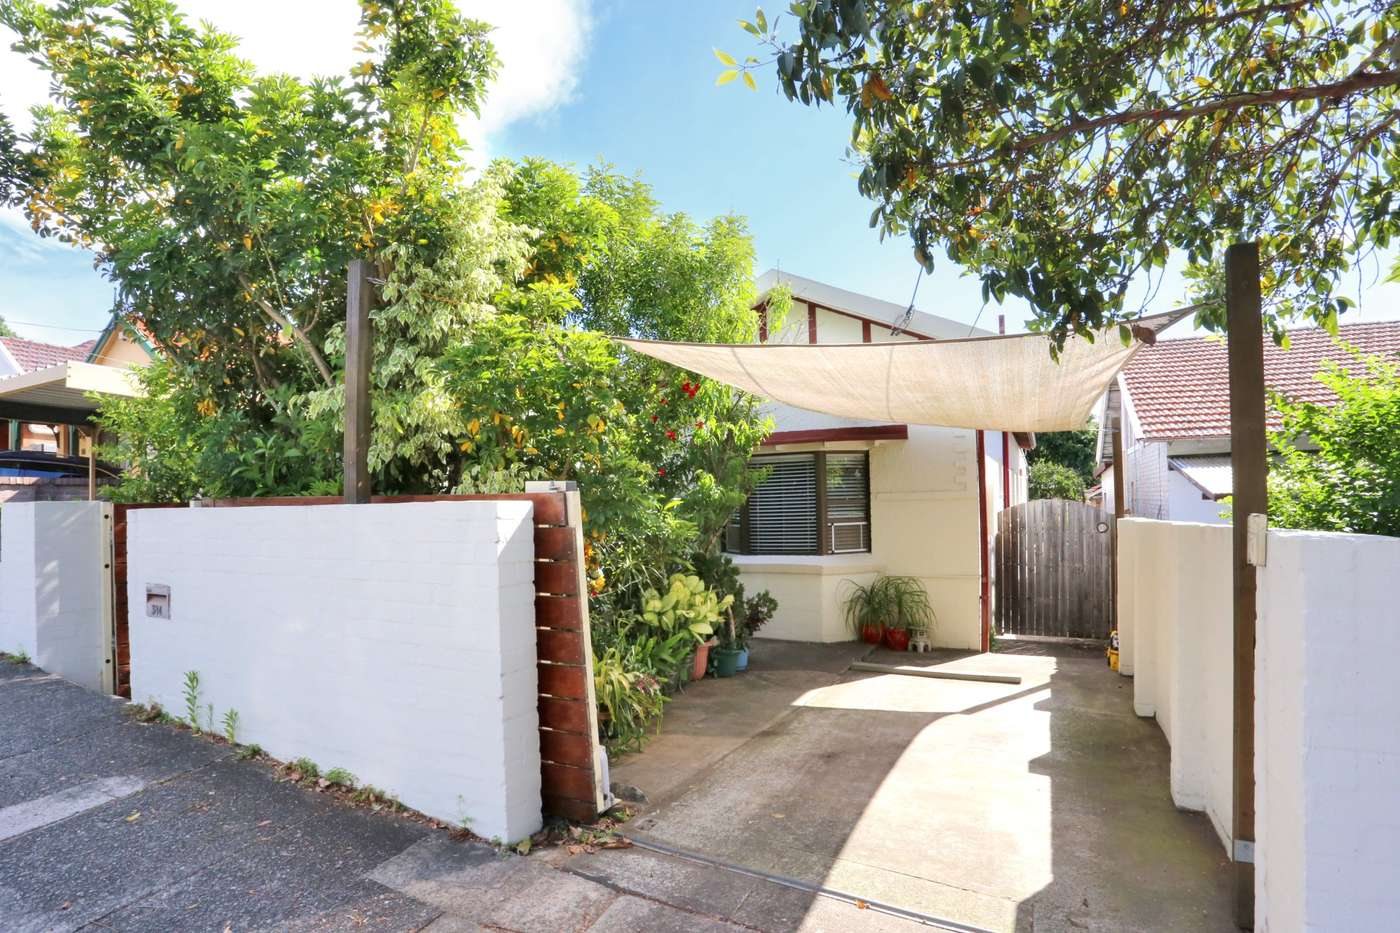 Main view of Homely house listing, 384 Penshurst St, Chatswood, NSW 2067